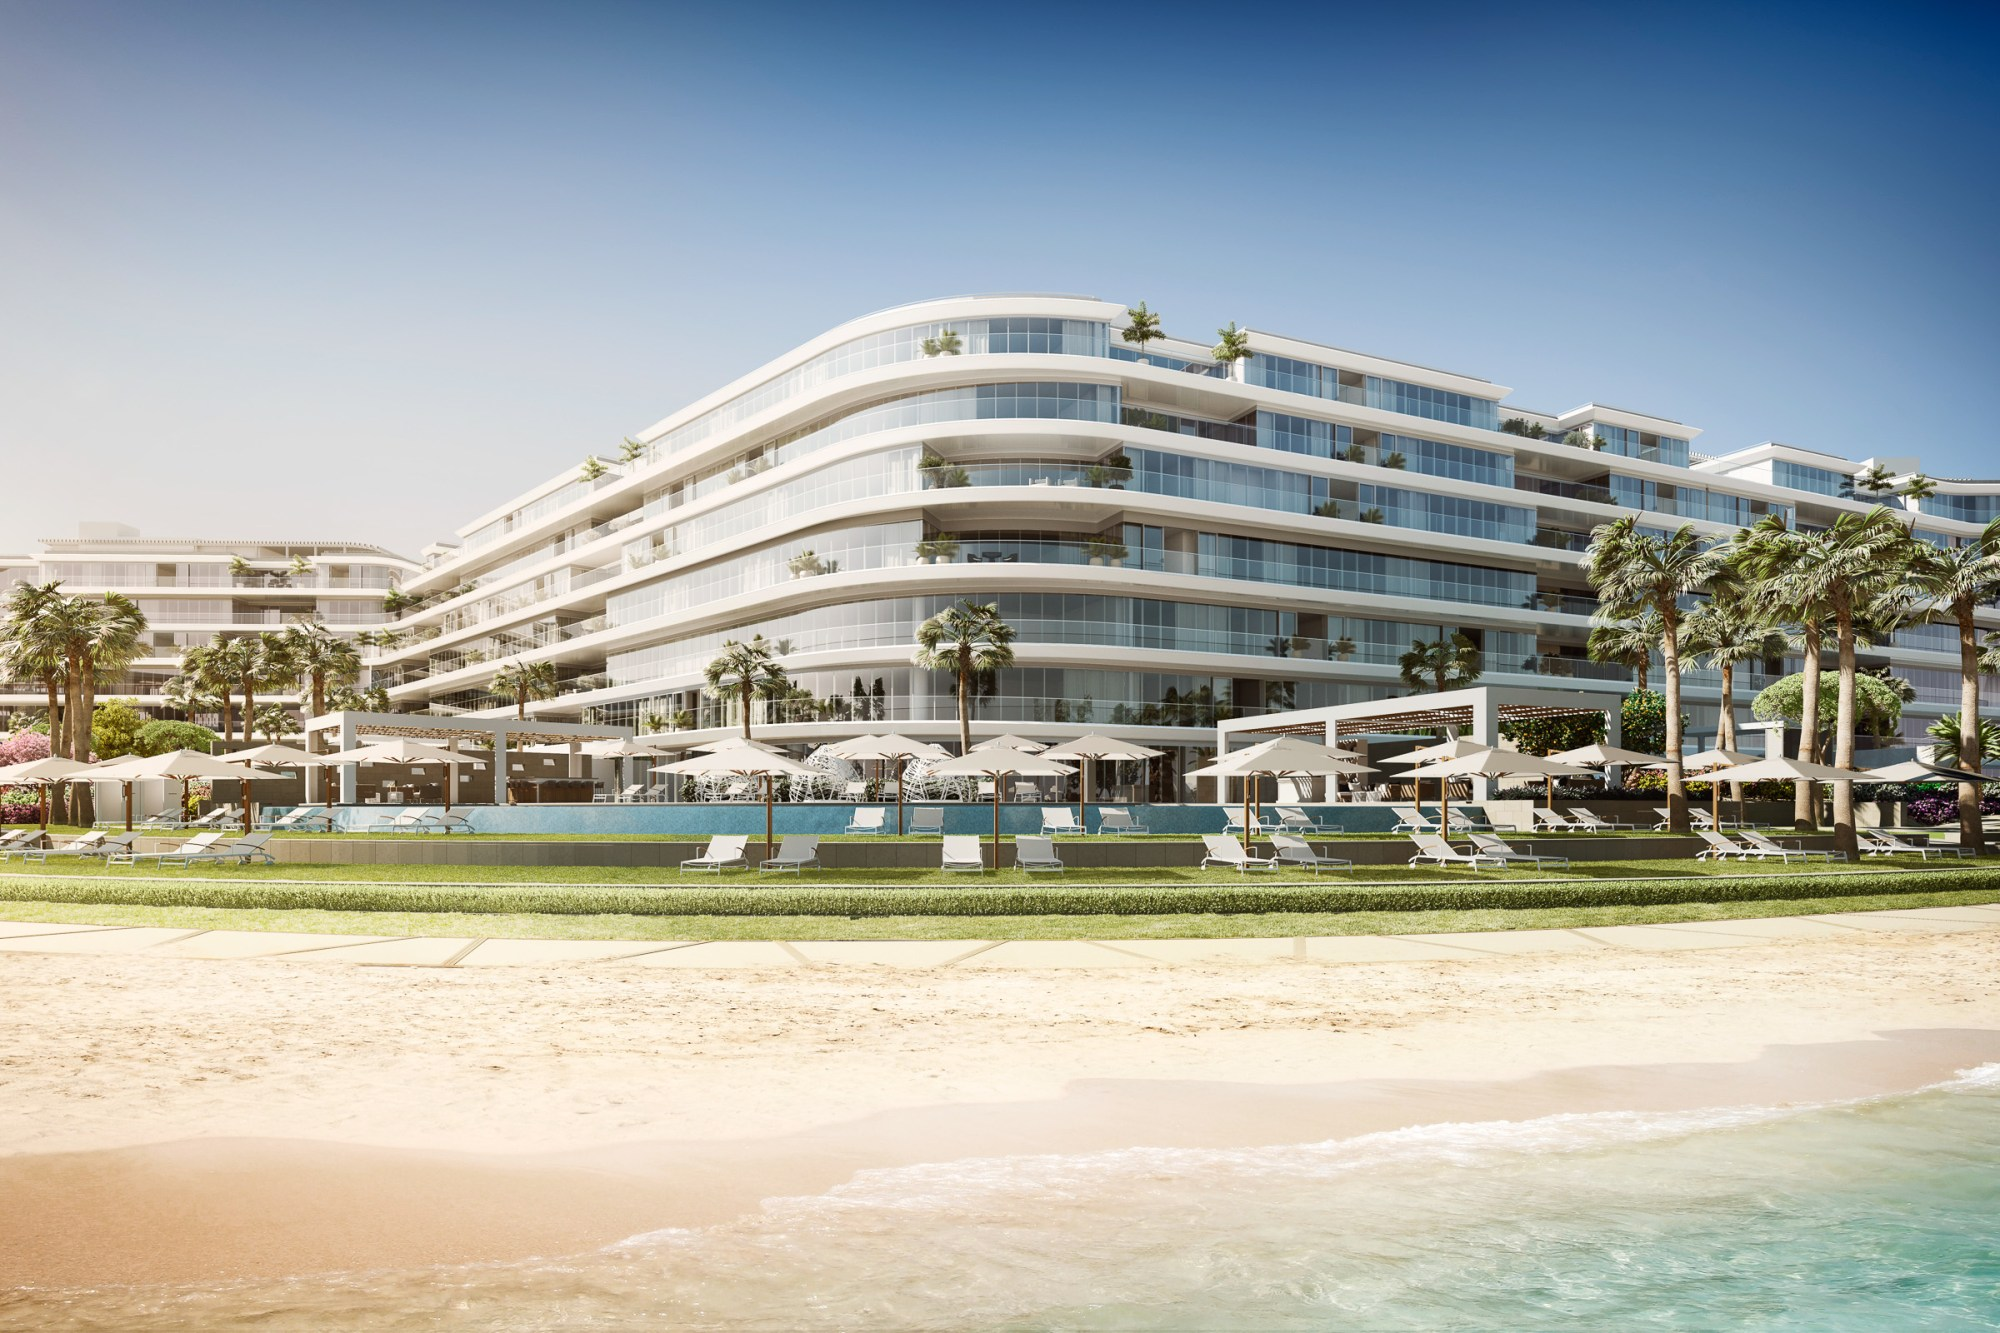 3 Bedroom In W Residences Dubai - The Palm